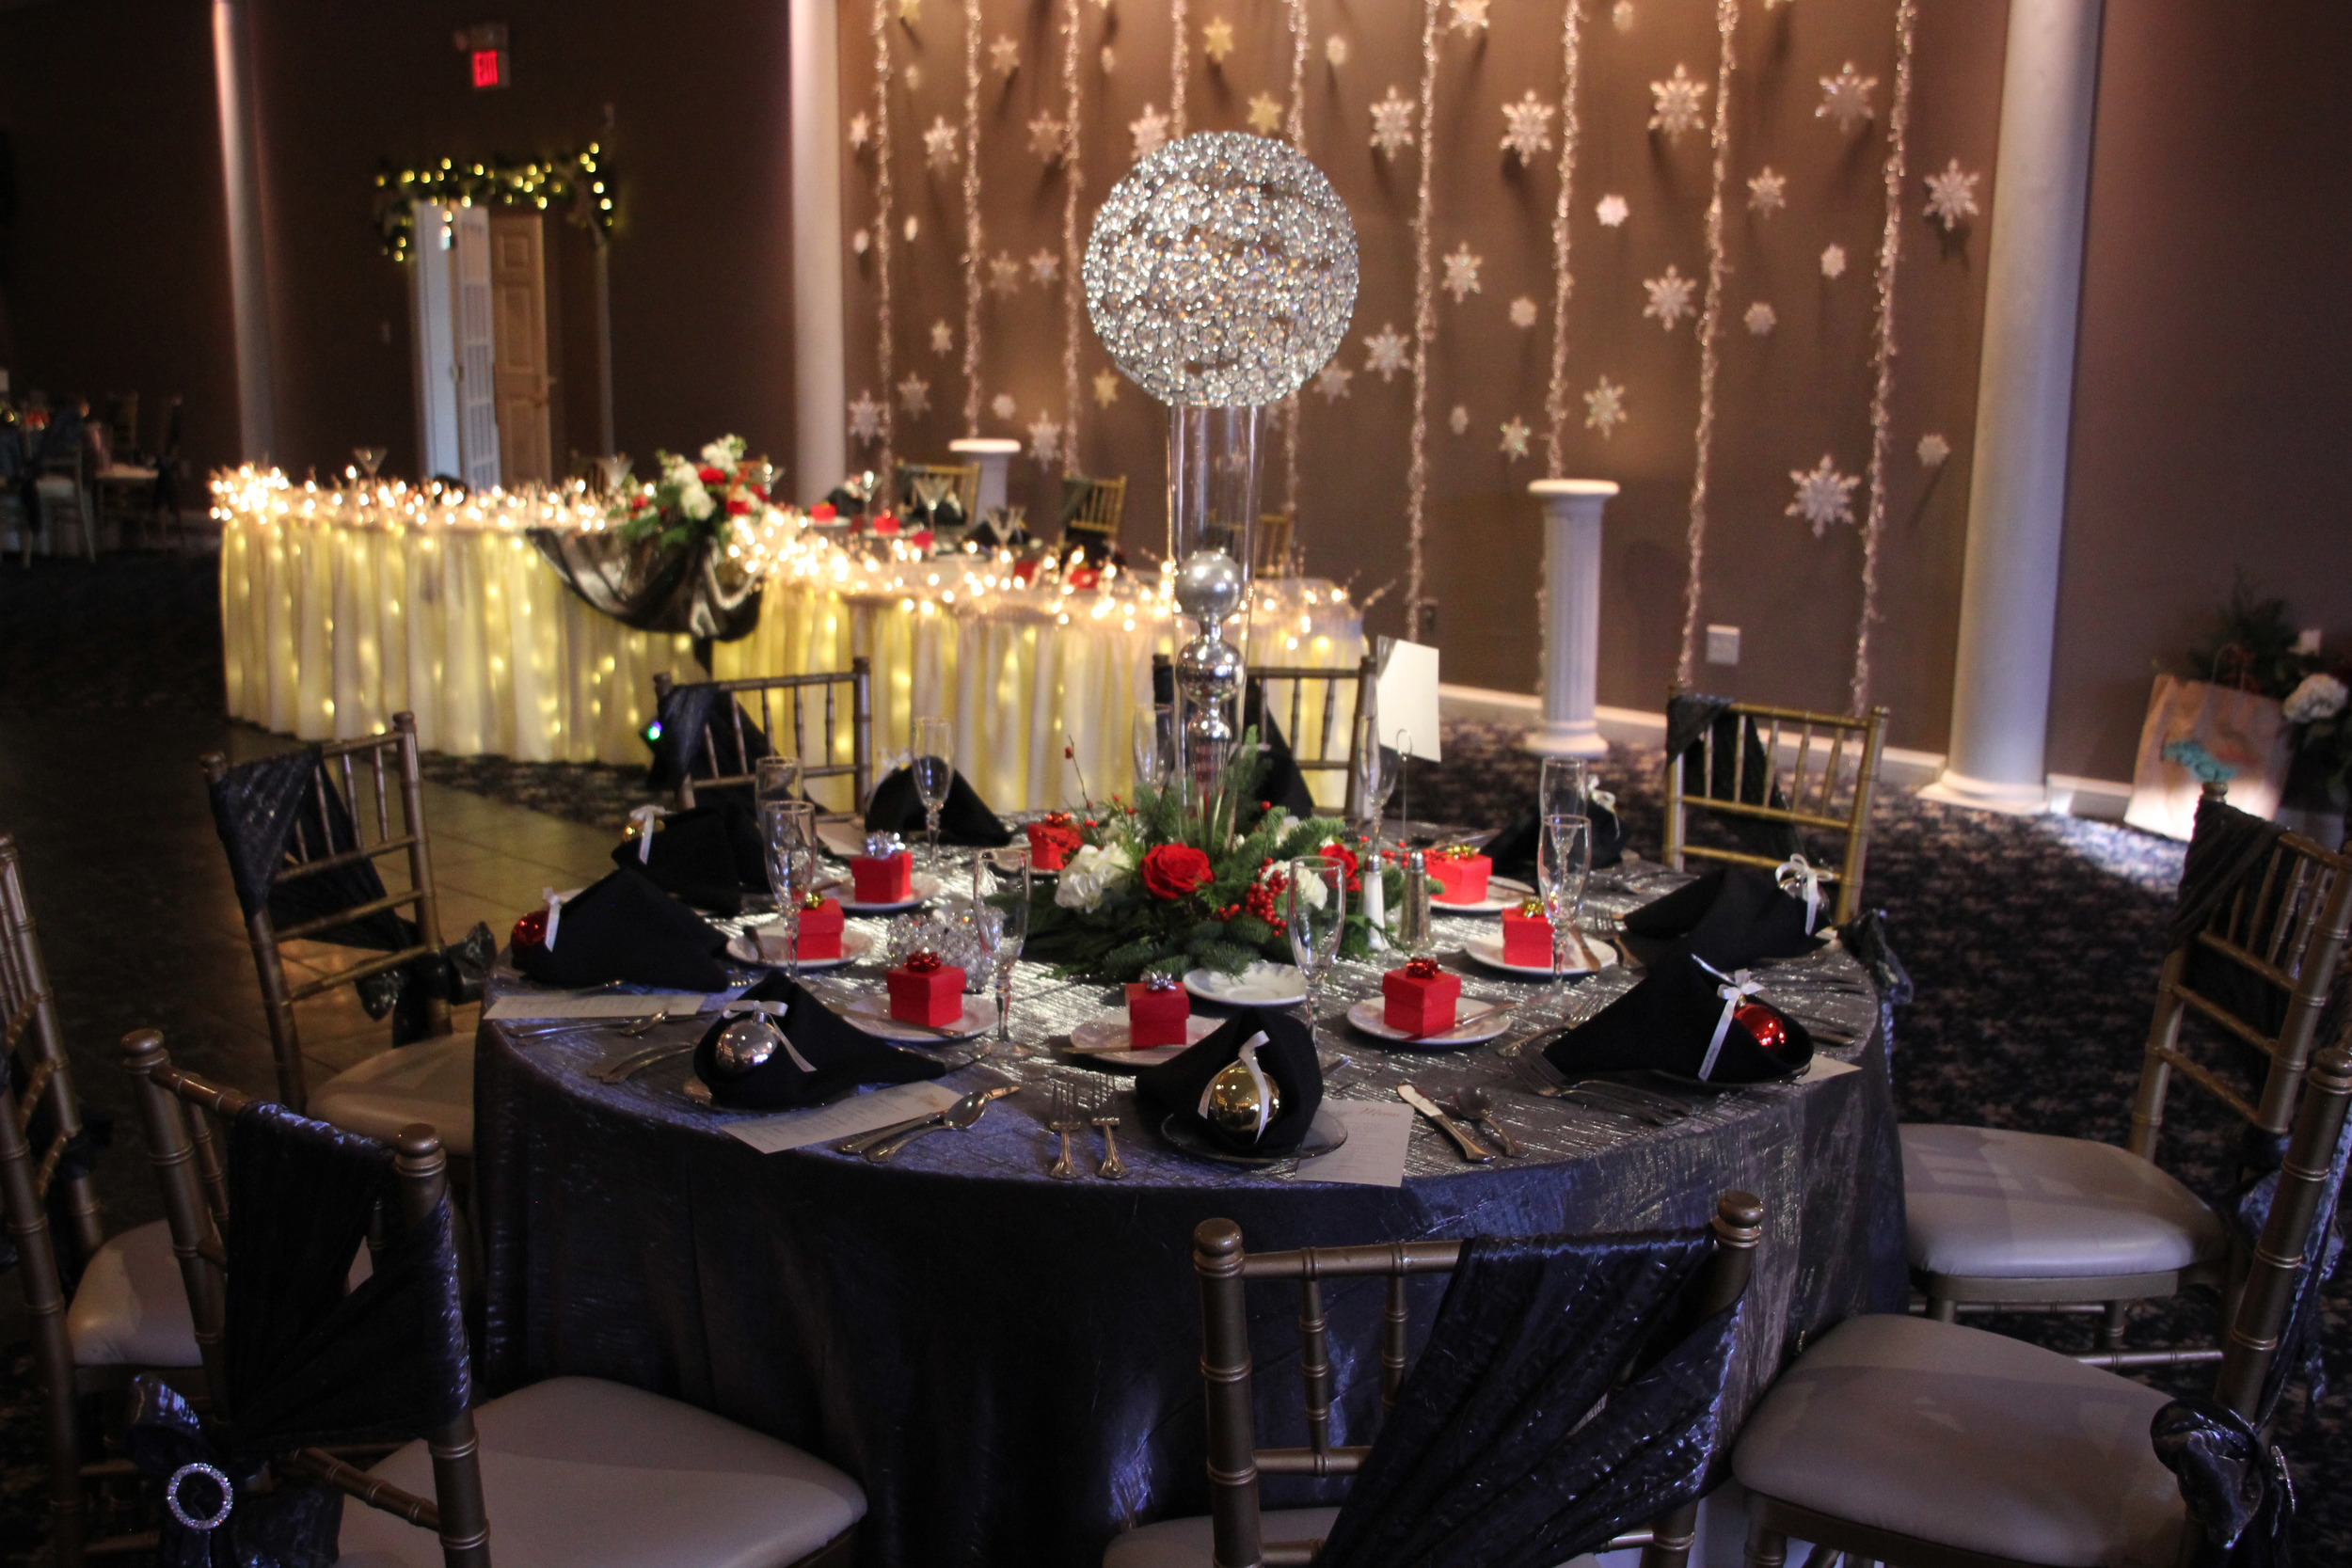 Snowflake backdrop with crystal globes on pilsner vase